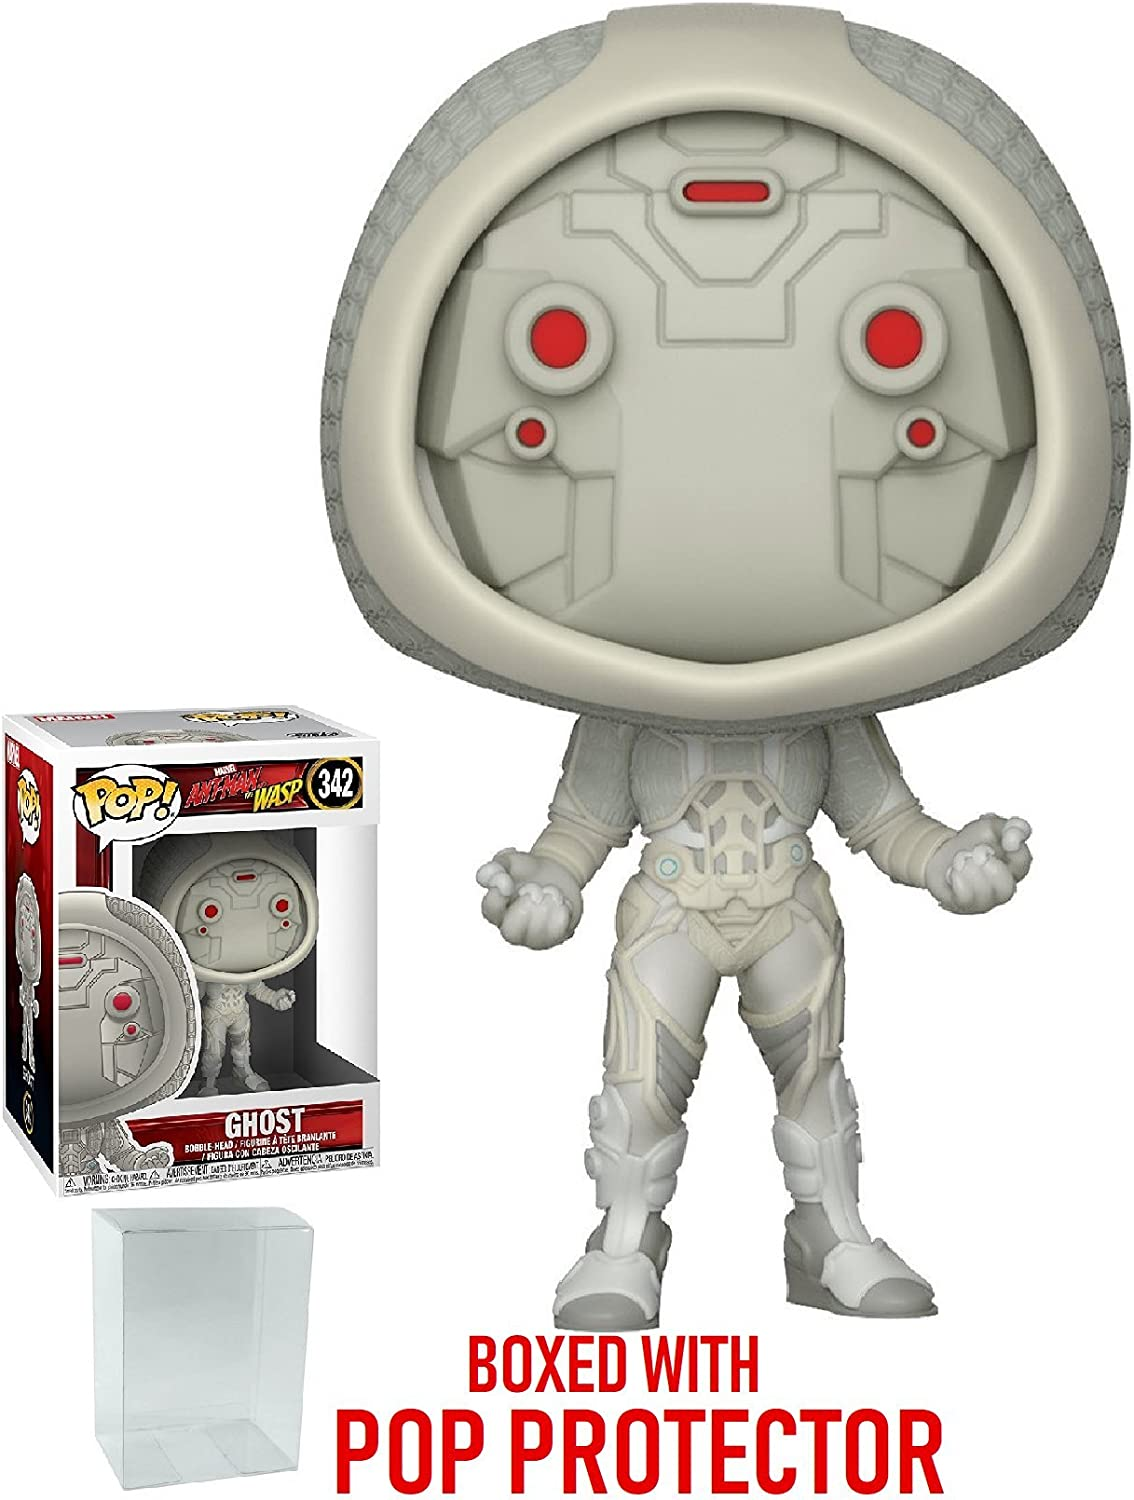 Ant-Man and the Wasp Ghost Vinyl Bobble-Head Item